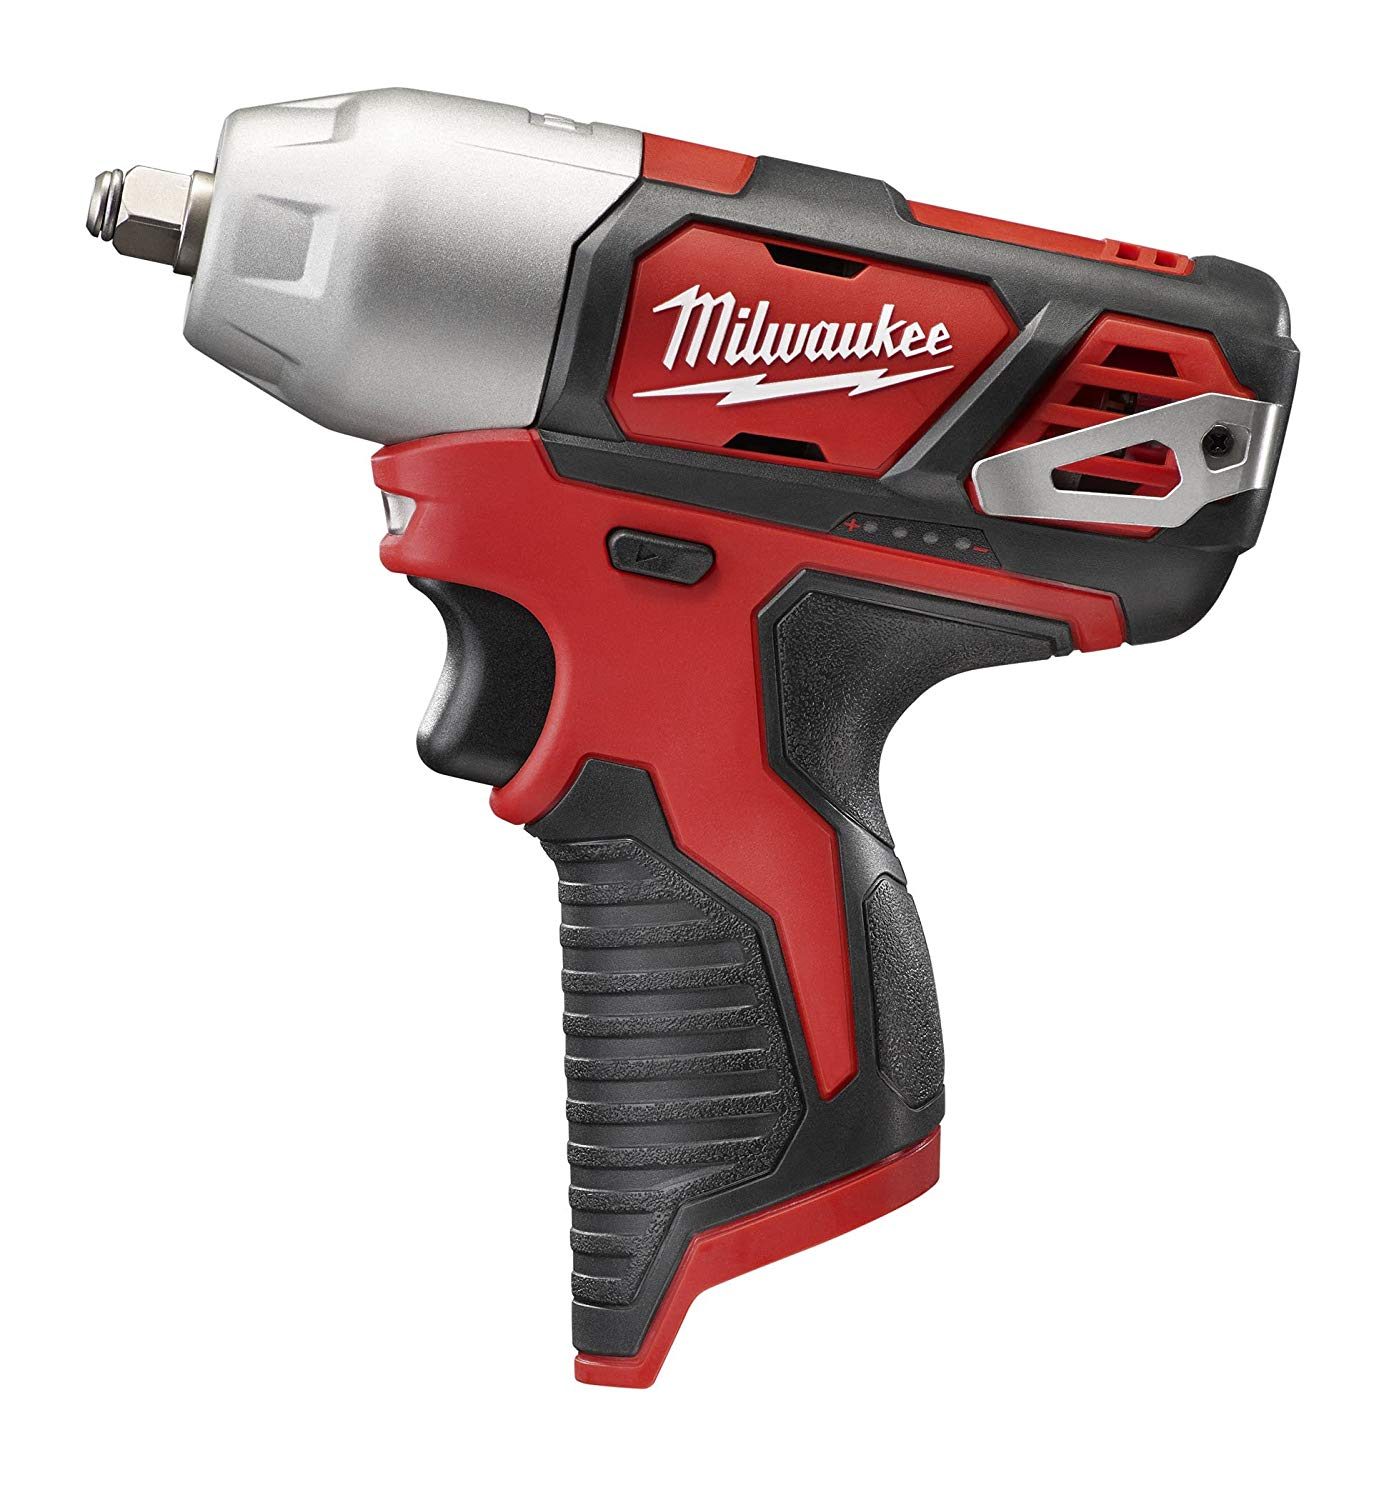 Milwaukee® M12™ 2463-20 Compact Cordless Impact Wrench With Friction Ring, 3/8 in Straight Drive, 3300 bpm, 100 ft-lb Torque, 12 VDC, 6-1/2 in OAL